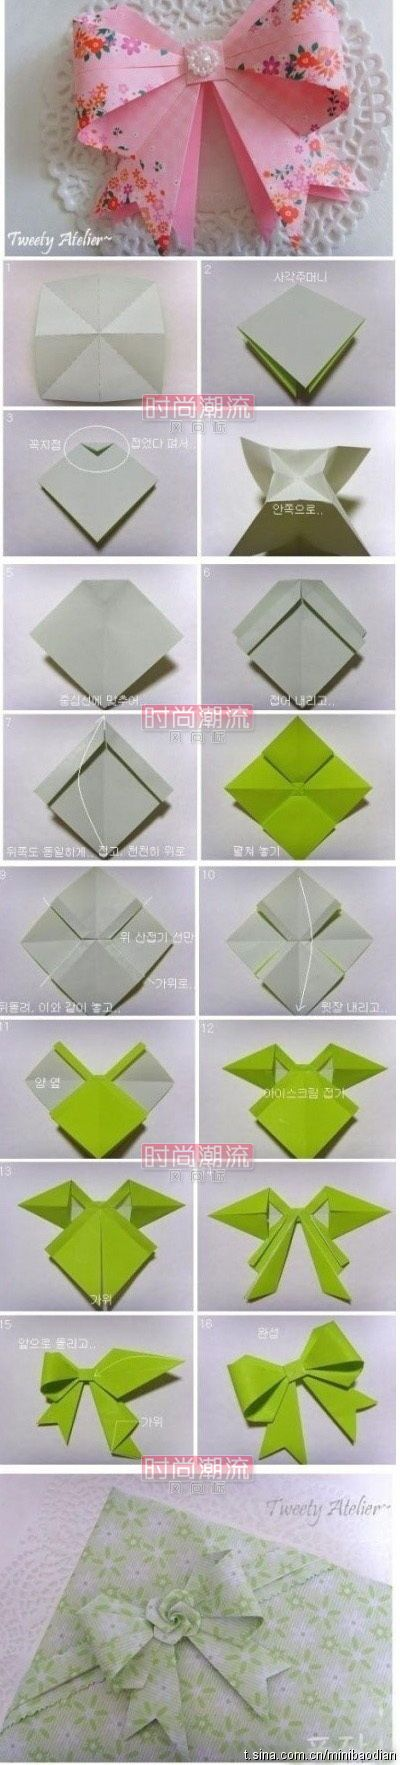 Origami Bow #instruction #tutorial Paper folding, origami instructions, origami …